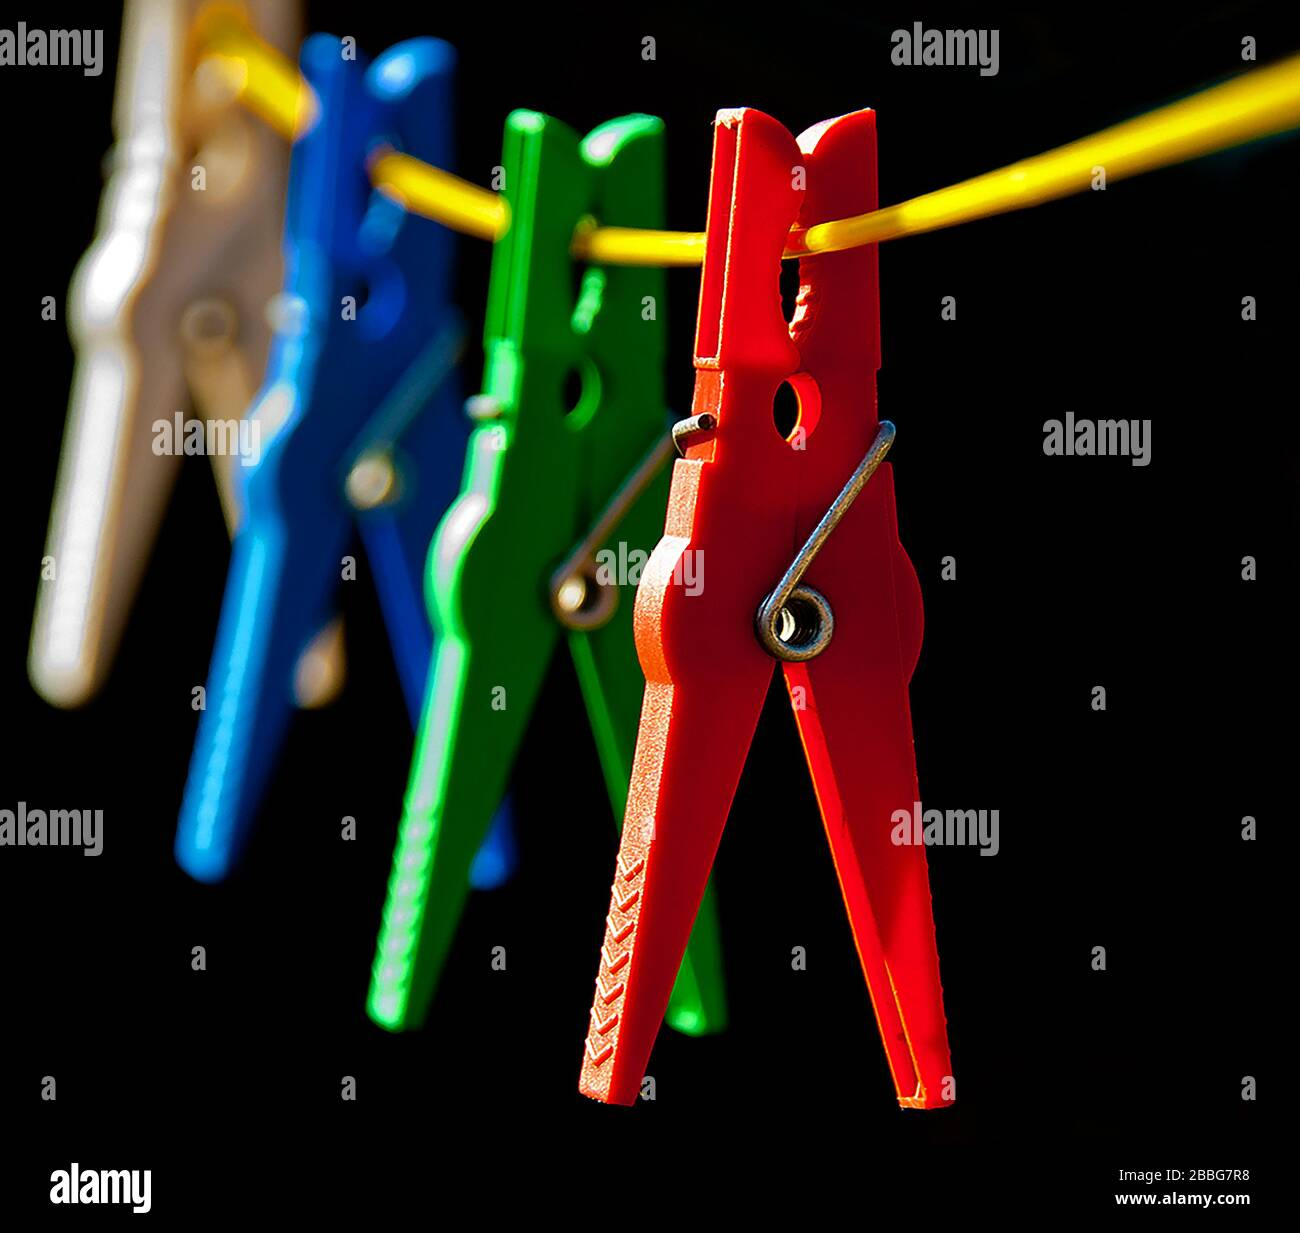 primary coloured pegs on line brightly lit on dark background Stock Photo